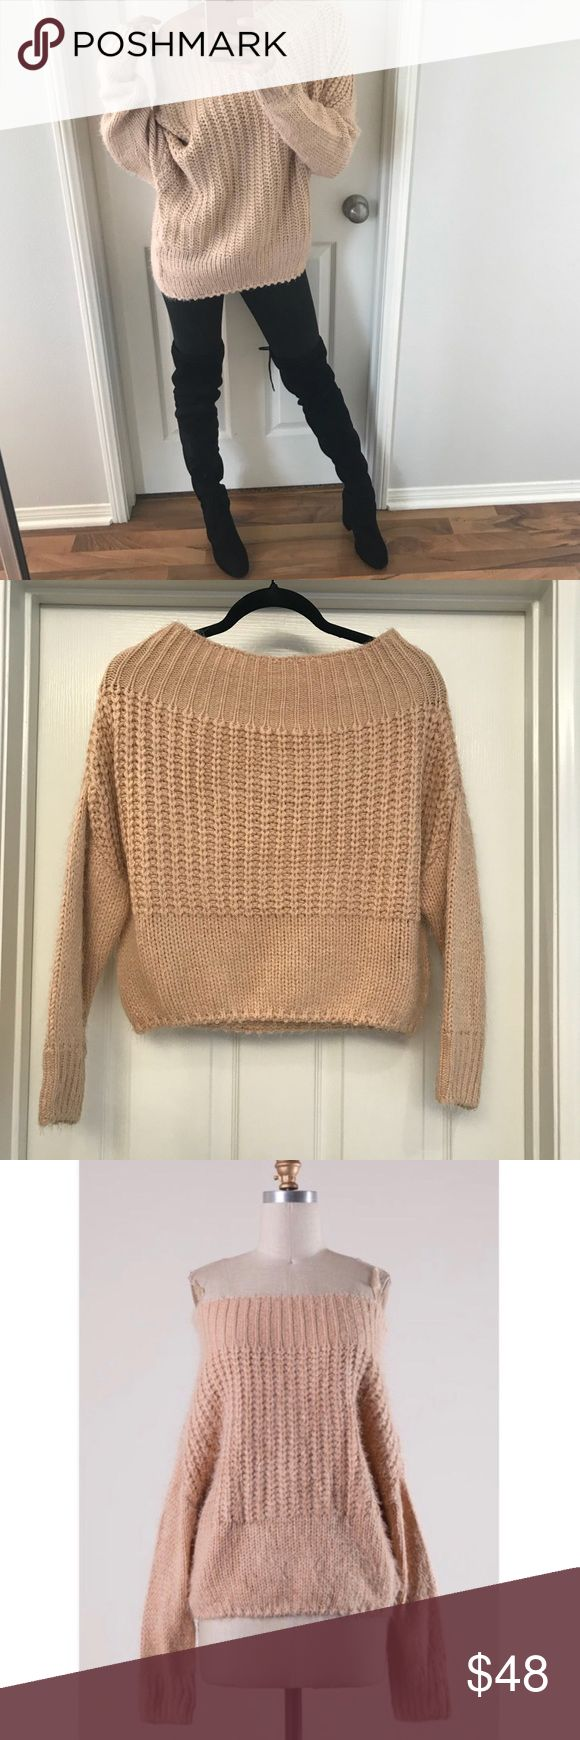 """Tan/Beige OTS Sweater 🔃Reposh, brand new with tags. I paid $48 + shipping  Using my photo as the cover because I sold the exact same sweater just a different label, sizing is marked """"S/M"""" on this sweater for sale and the fabric content is 55% cotton 25% Poly 20% nylon- which is very very soft and non shedding.   20"""" long from the top to the bottom as if it's on the body 22"""" pit to pit  Stock photo doesn't reflect color for some odd reason, my photos do. Sweaters"""